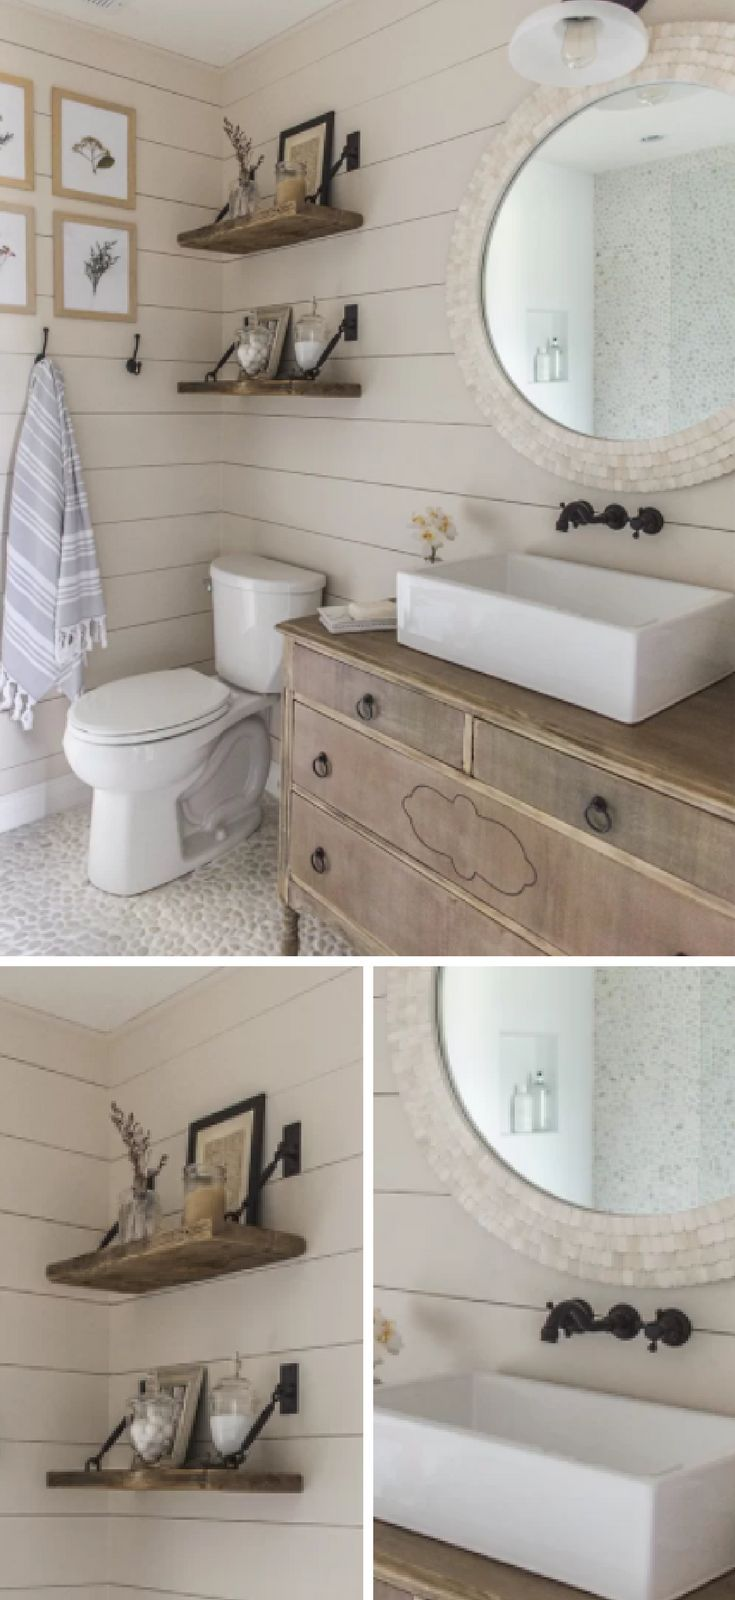 this looks like a farmhouse bathroom but bright and airy like a rh pinterest com mx